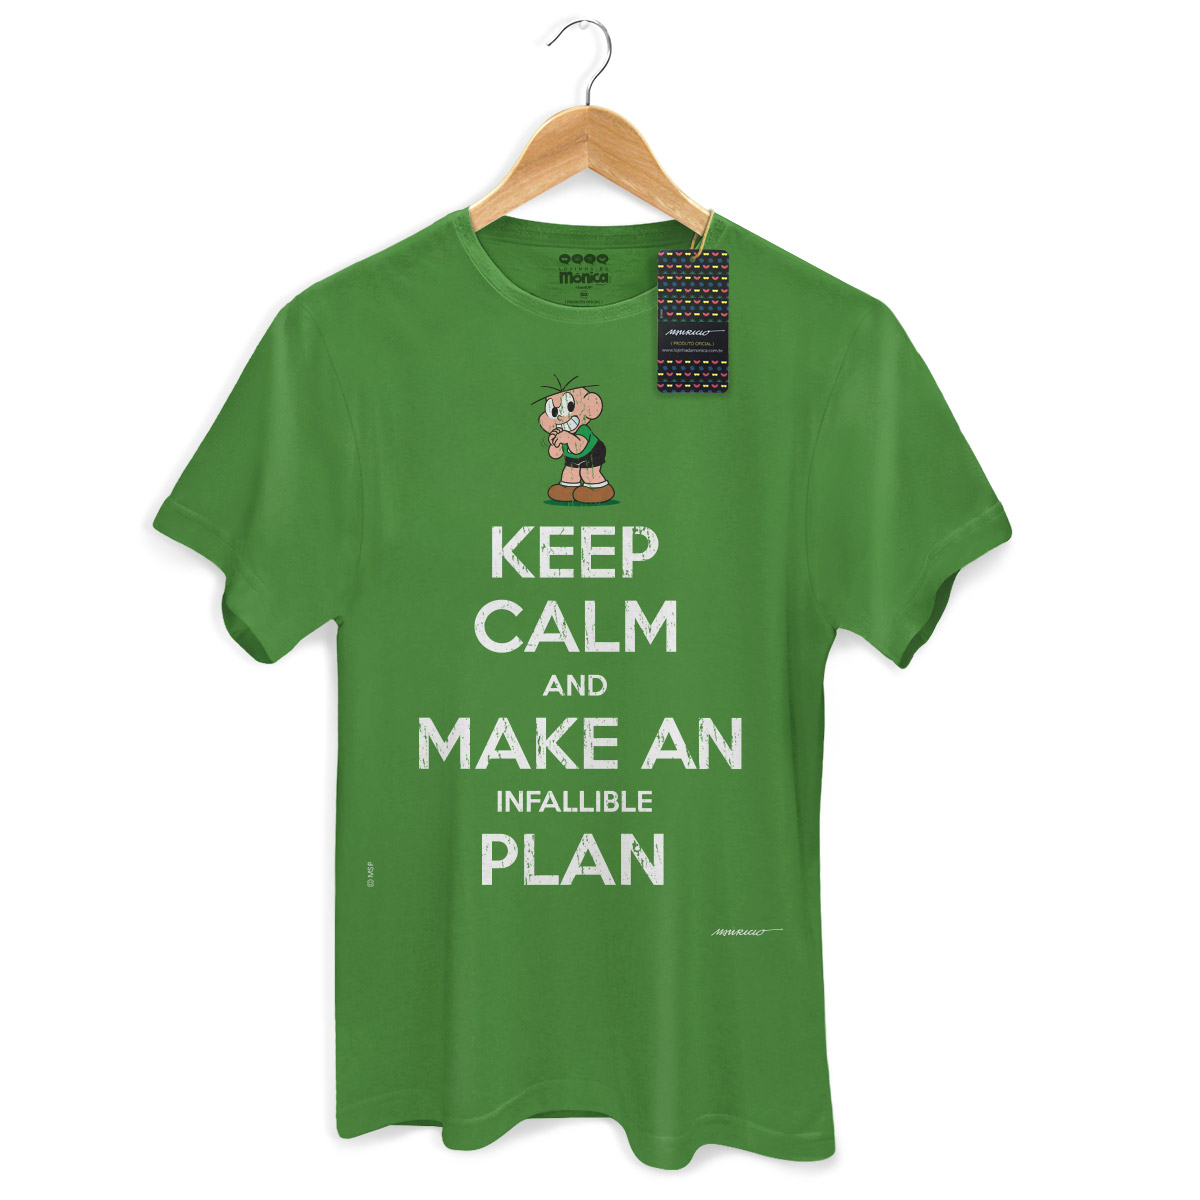 Camiseta Masculina Turma Da Mônica Cool Keep Calm And Make Infallible Plan